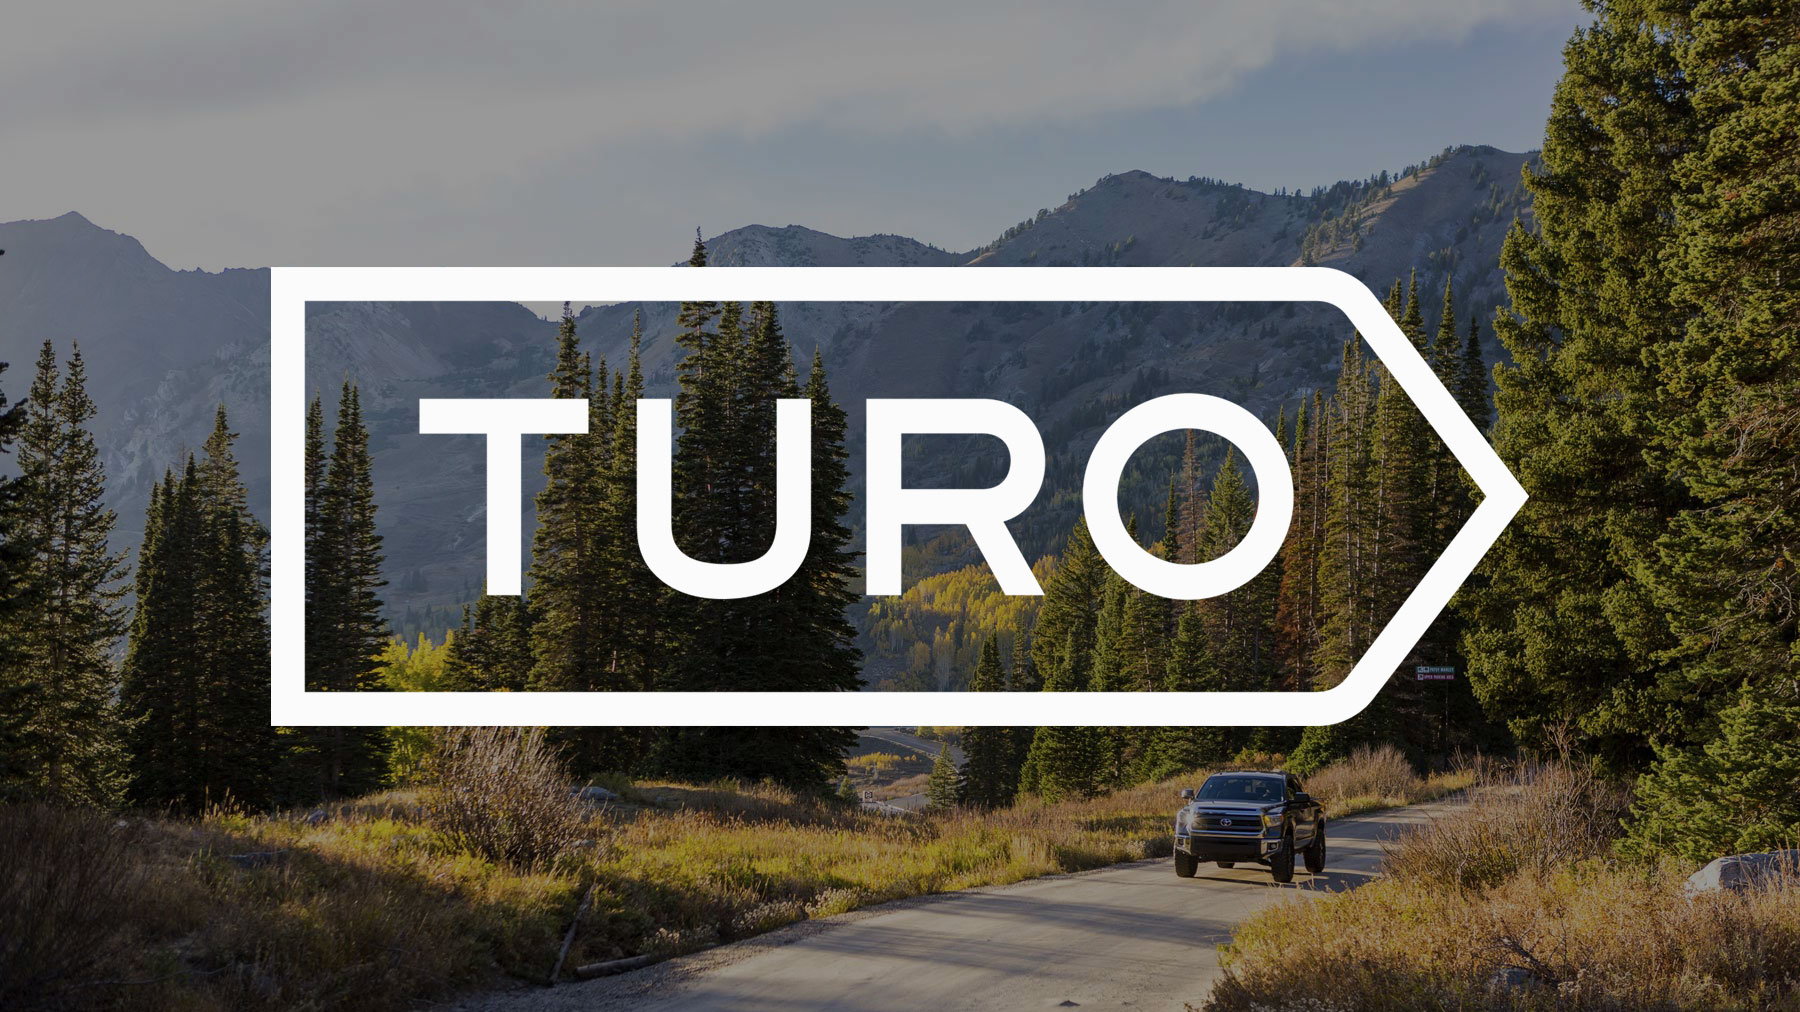 turo canada announcement airbnb for cars comes to canada canadian freebies coupons deals. Black Bedroom Furniture Sets. Home Design Ideas